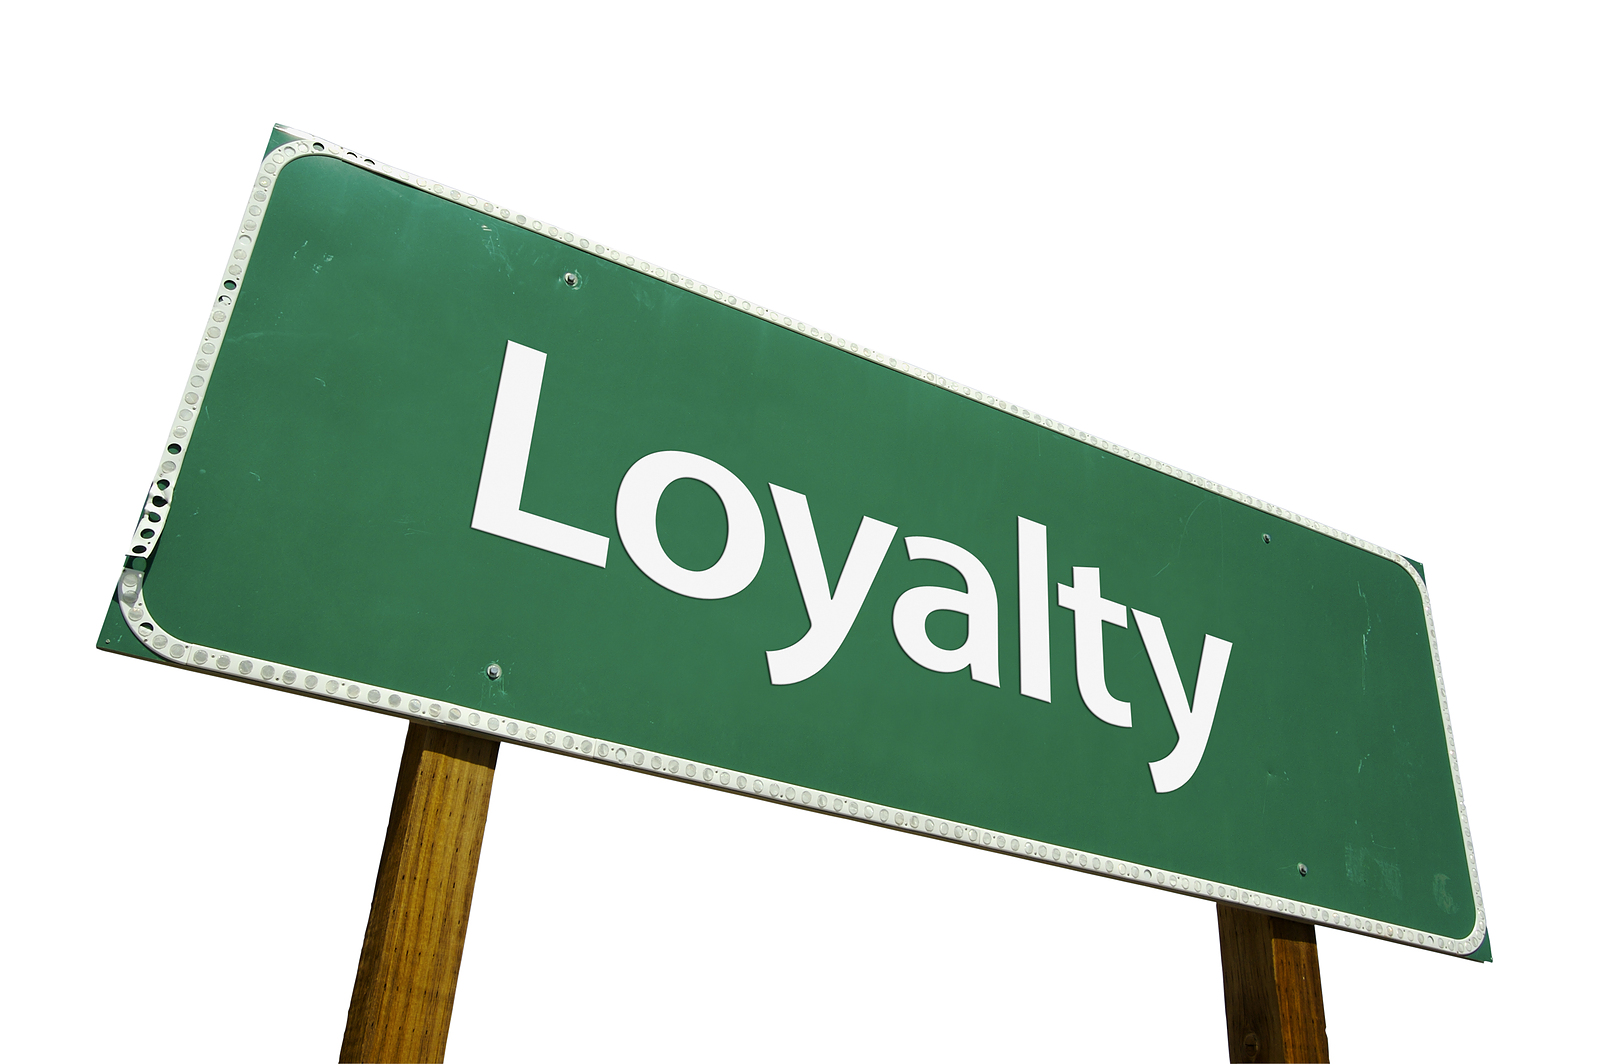 loyalty | All the action from the casino floor: news, views and more